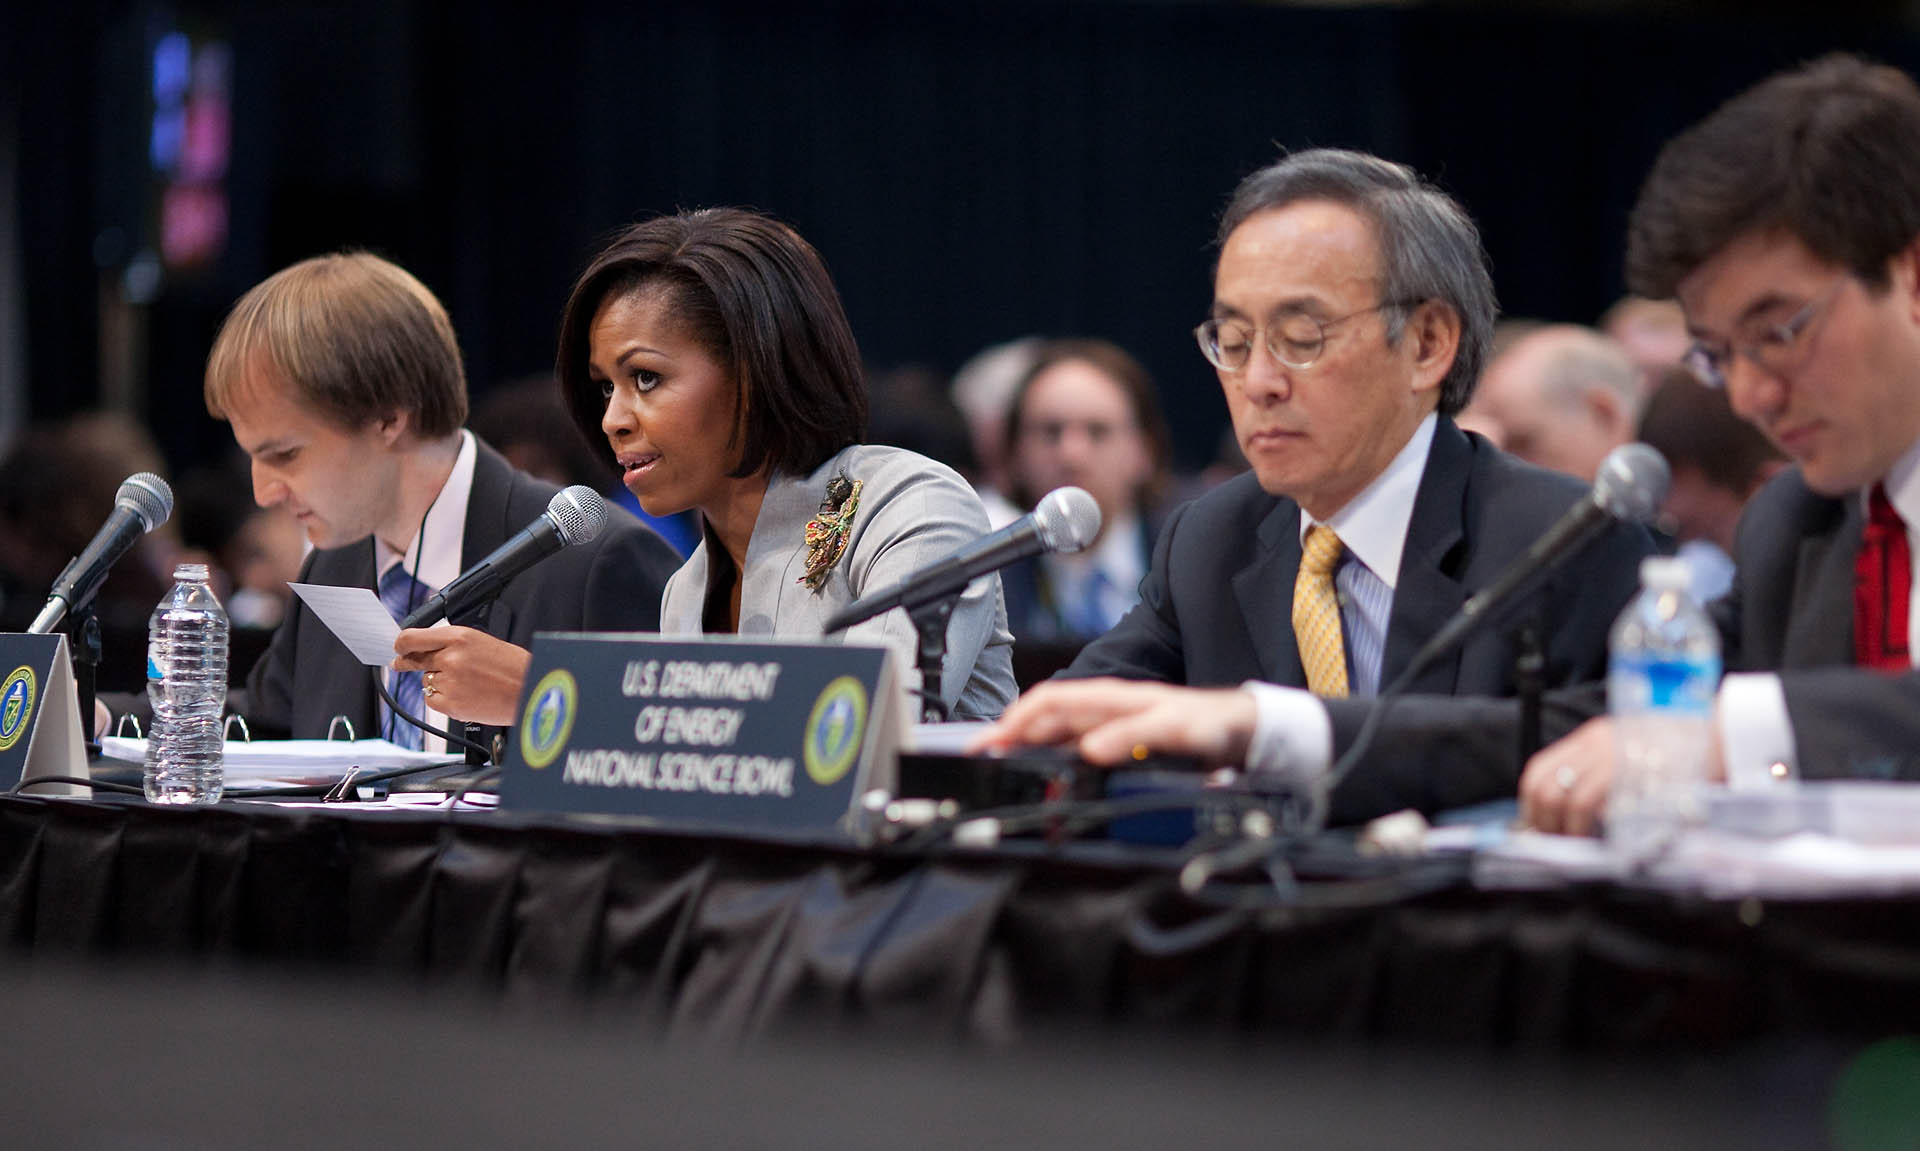 First Lady Michelle Obama and Energy Secretary Steven Chu ask the championship round bonus point questions